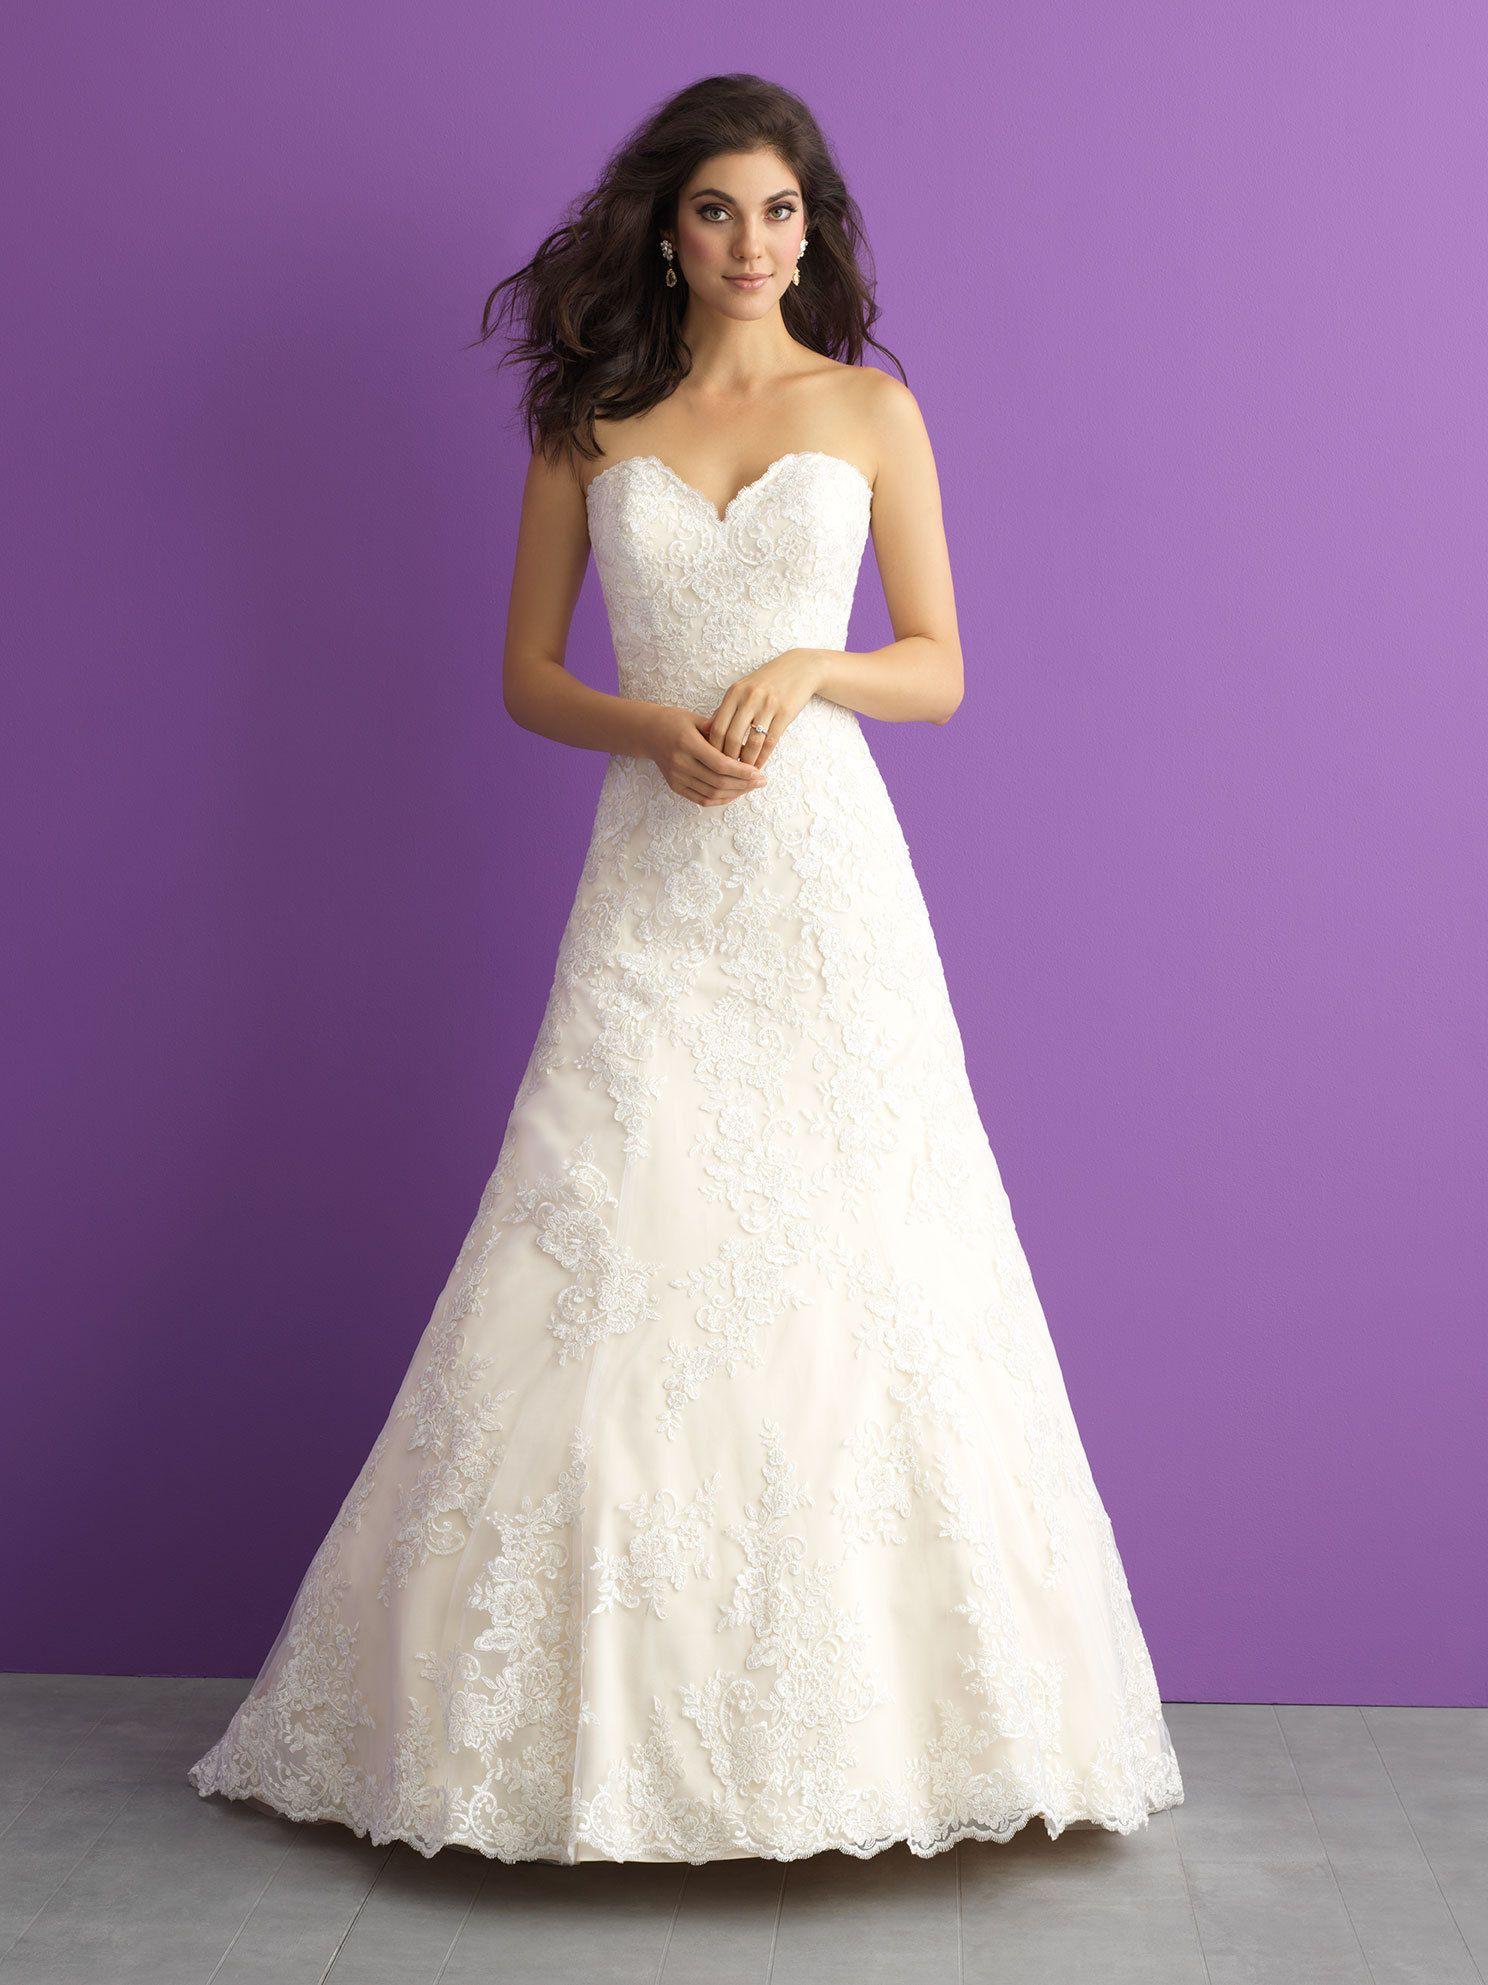 Style 3012 - Size 14/16Was £1600 Now £800